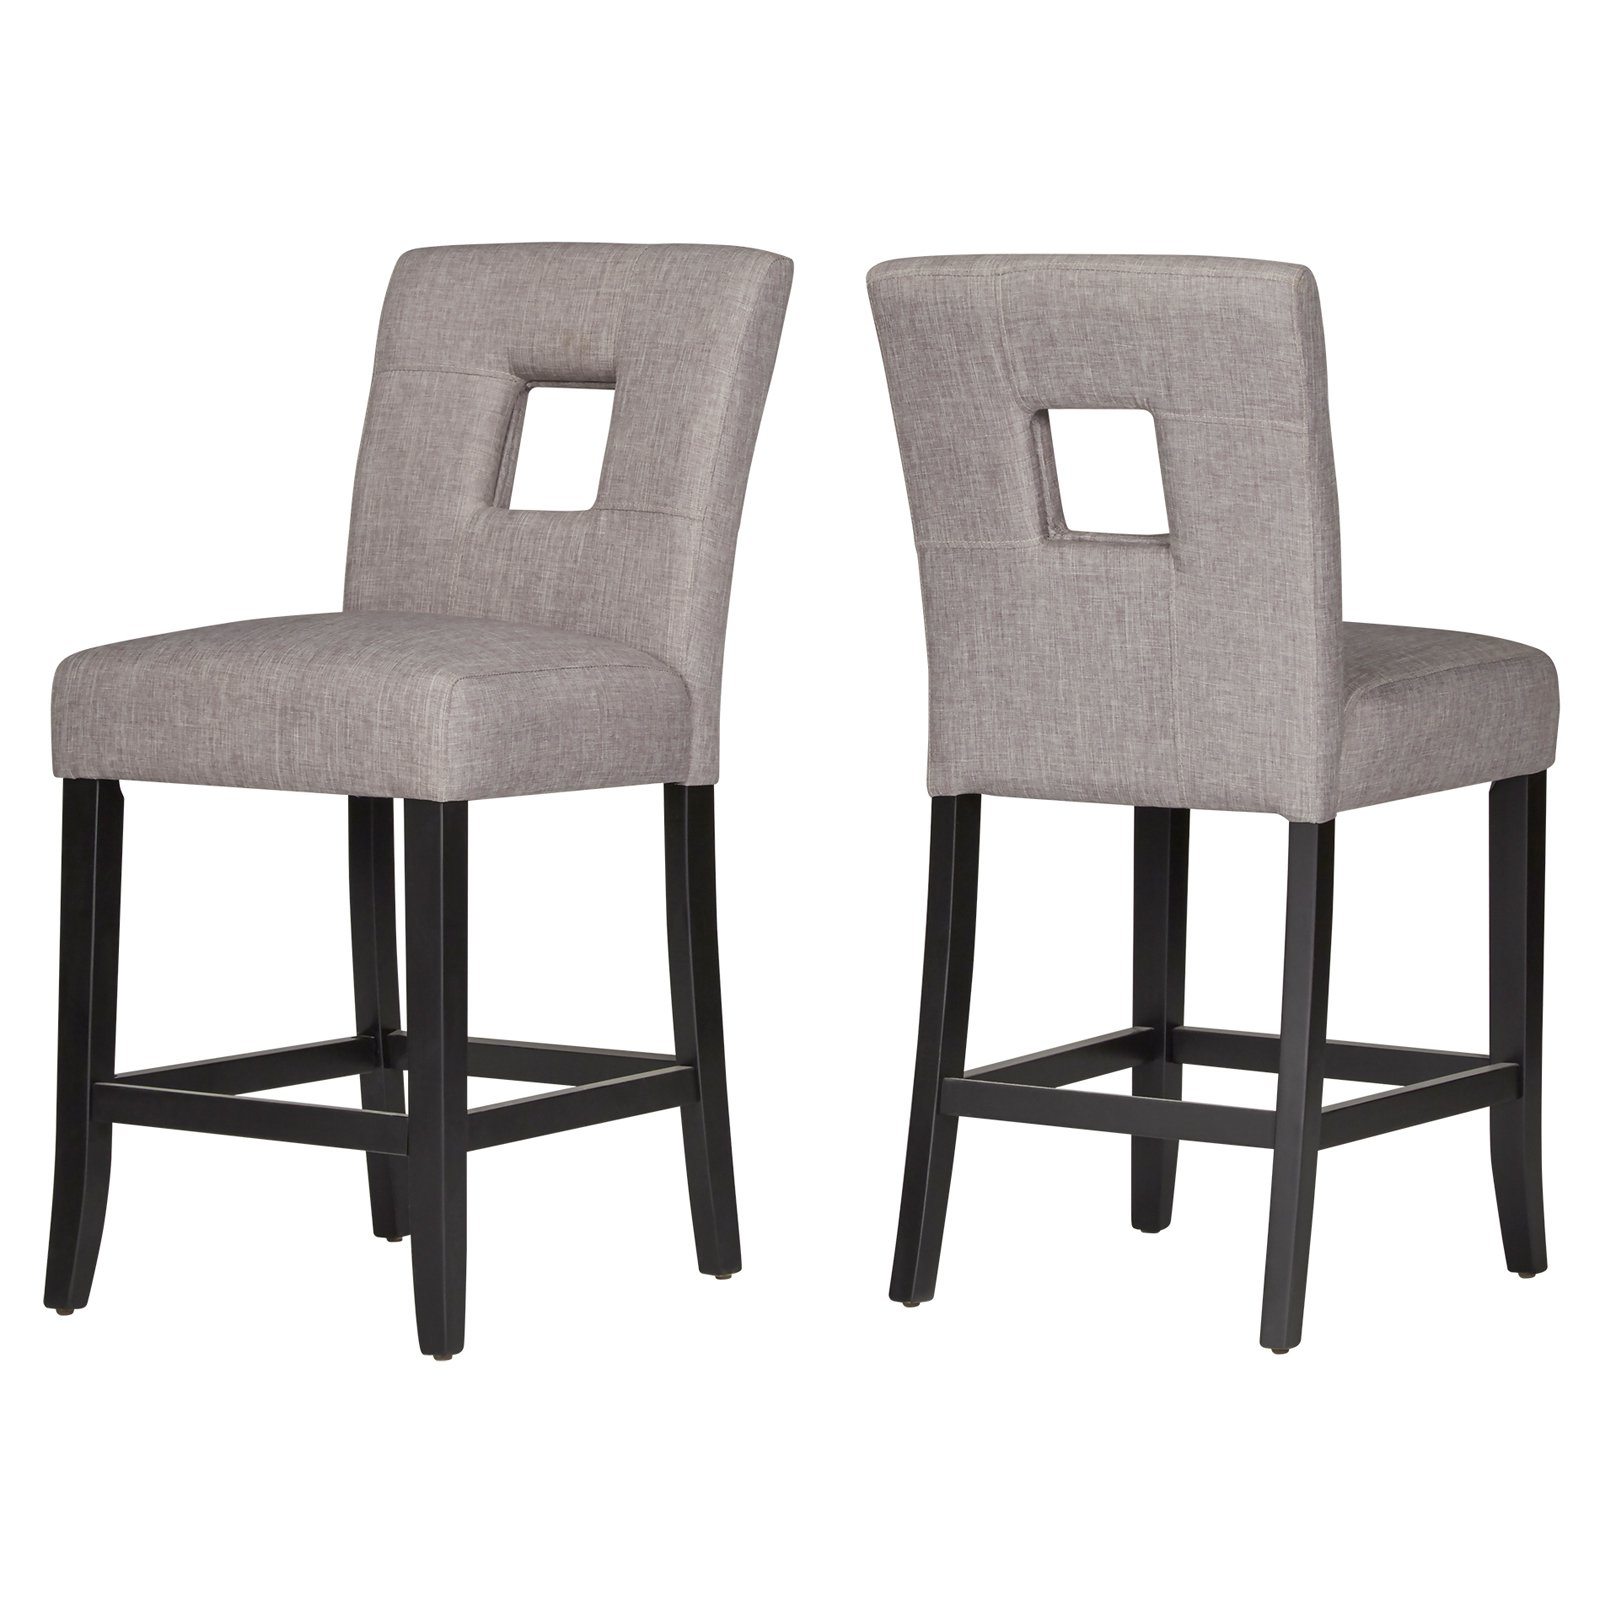 counter height vanity chair. chelsea lane linen keyhole counter height dining chair - set of 2 vanity d